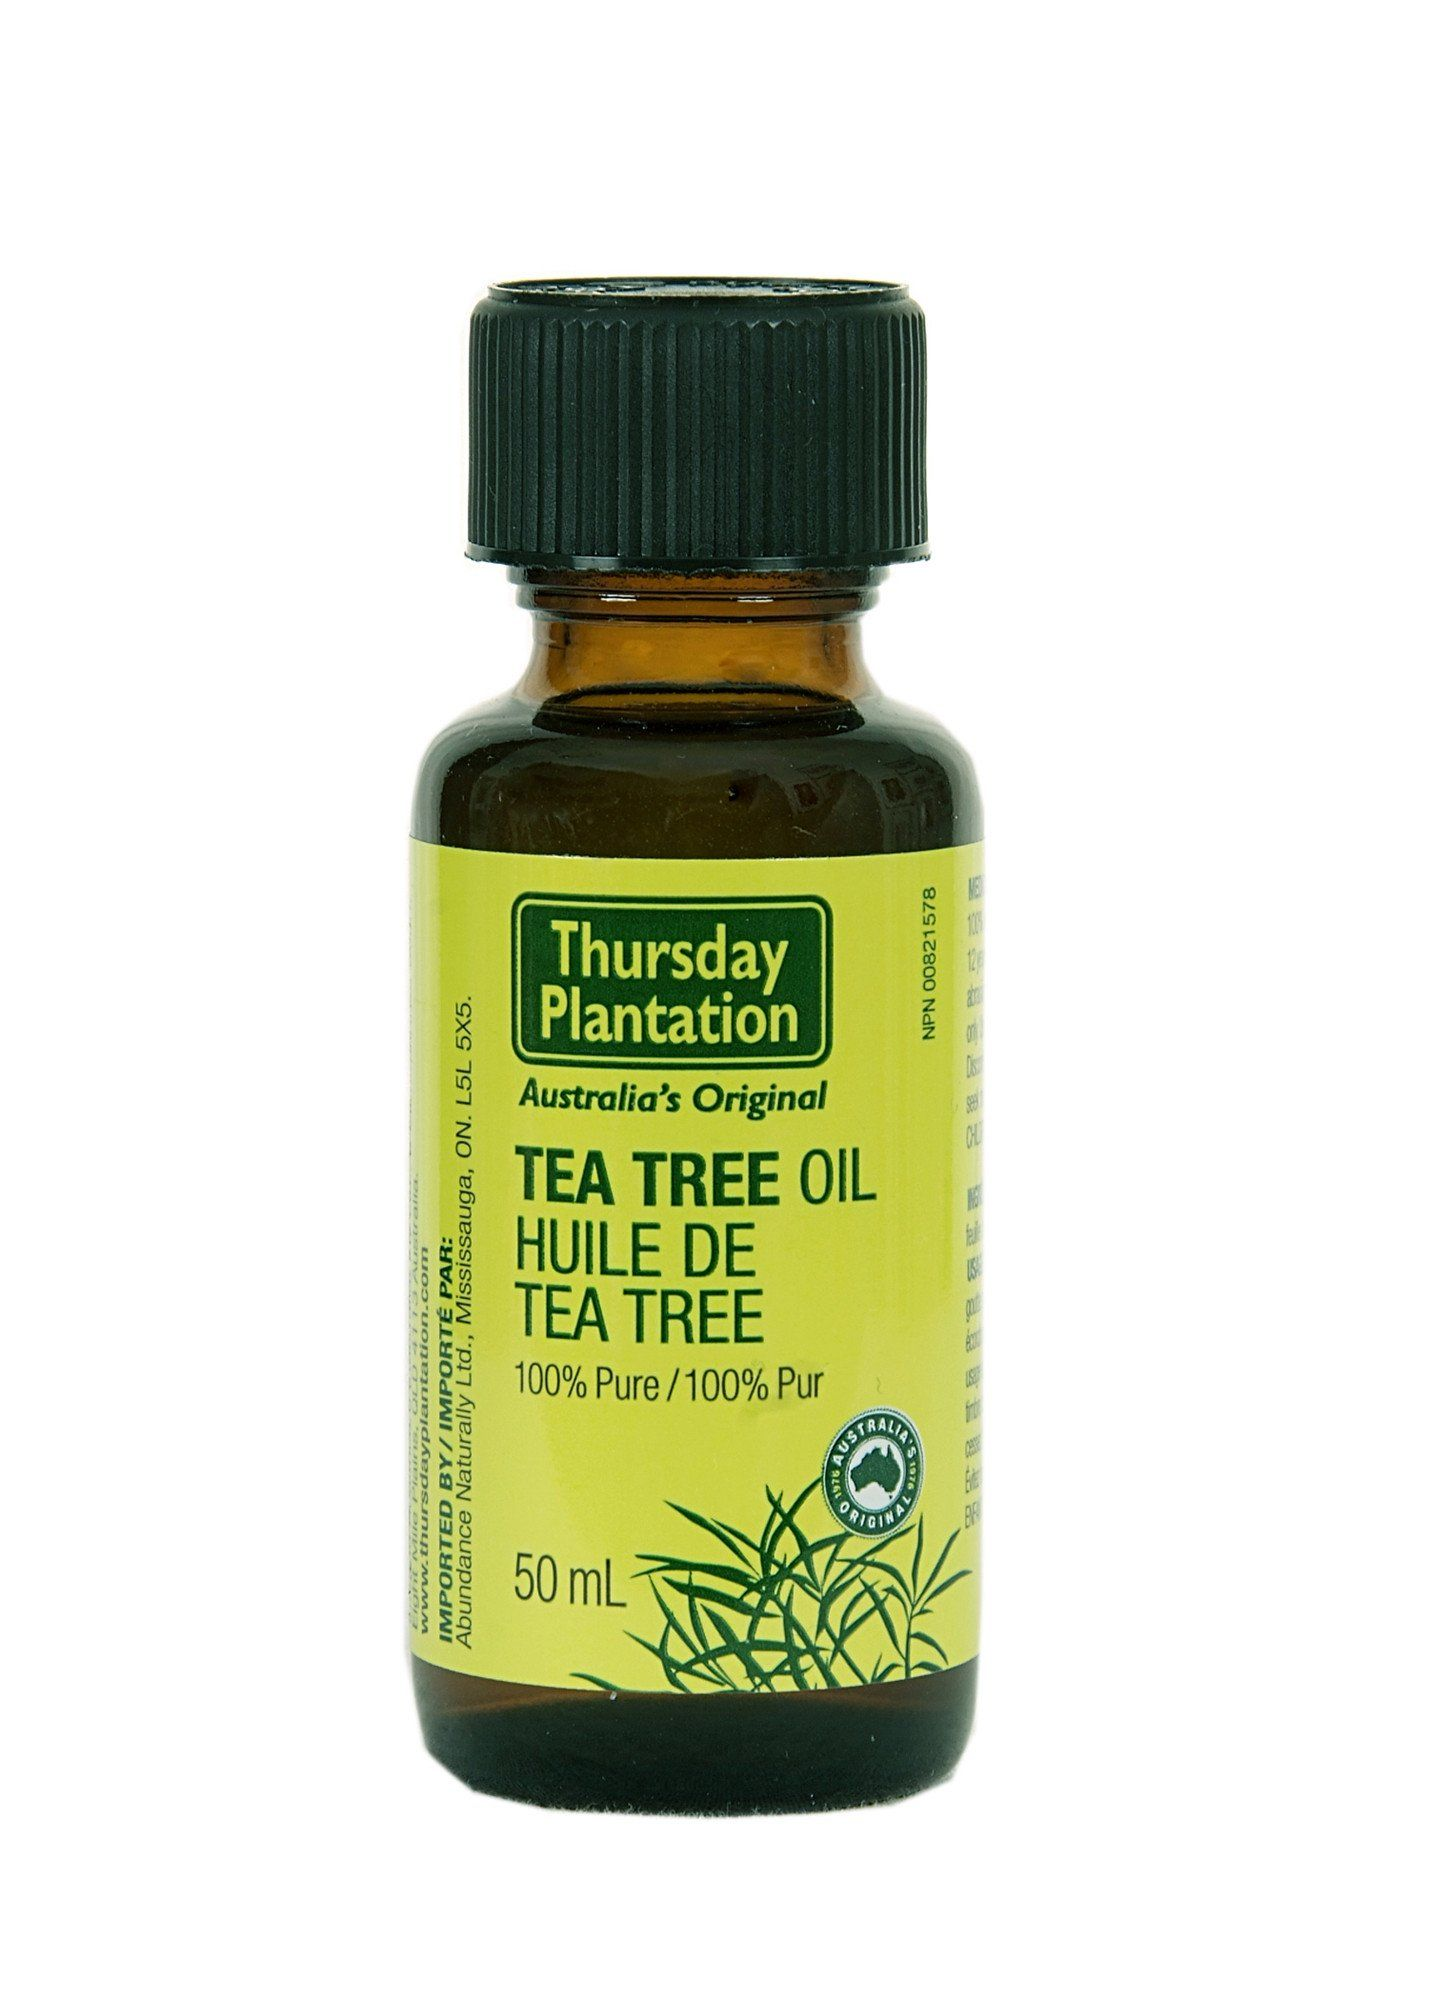 Supplements & Vitamins - Thursday Plantation - Tea Tree Oil, 50ml